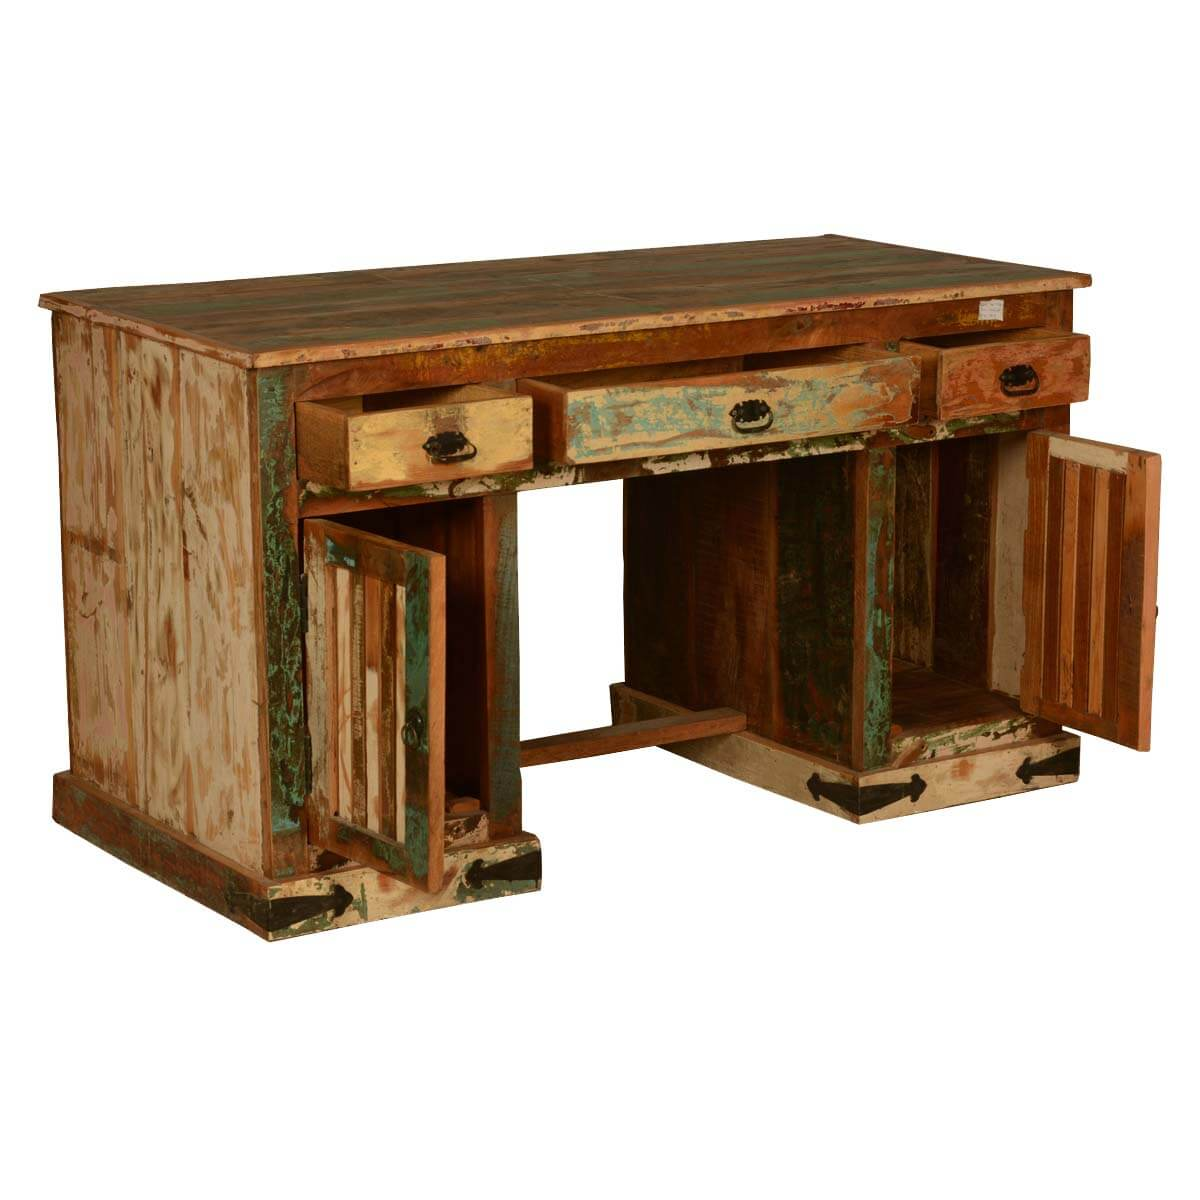 gothic rustic double pedestal reclaimed wood office desk